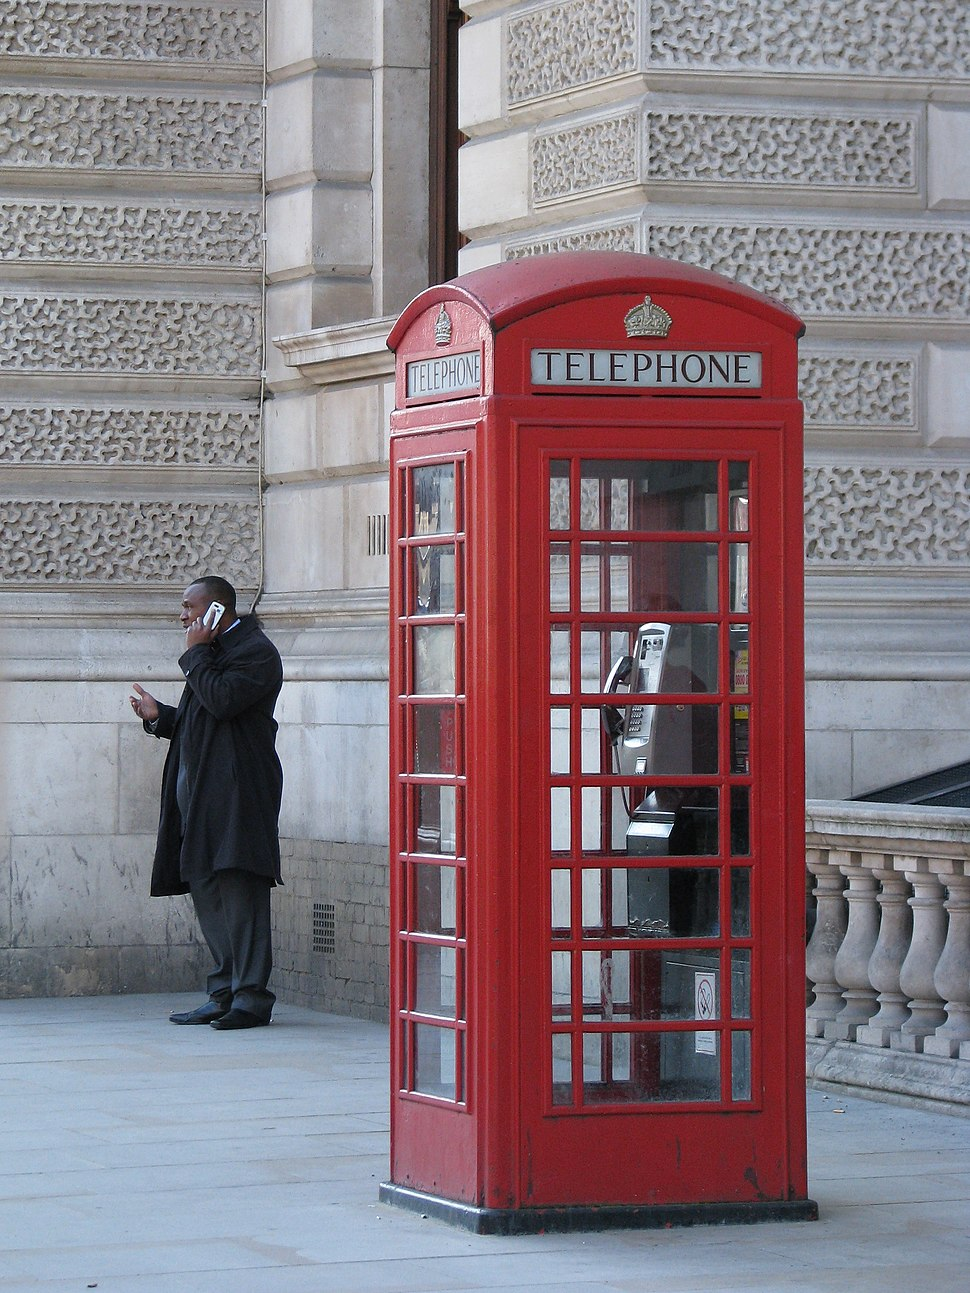 UK - 10 - Phones old and new (2997615876)